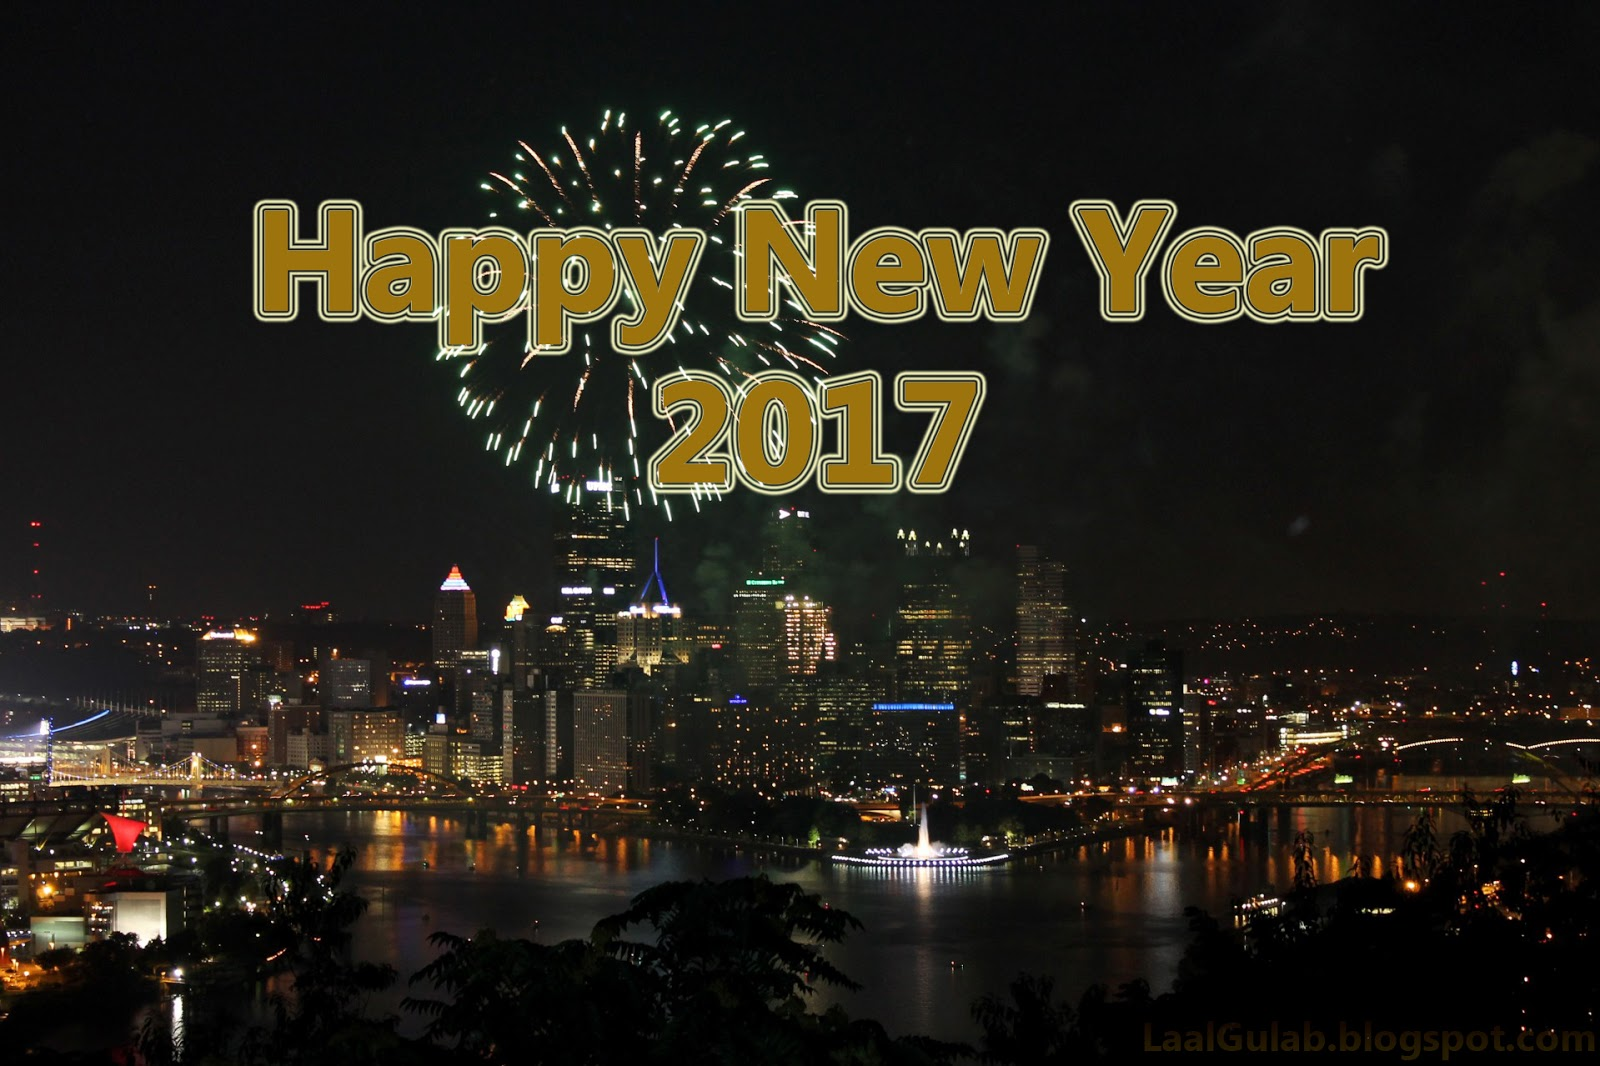 Hy New Year 2017 Full Hd Wallpaper For Mobile Phone